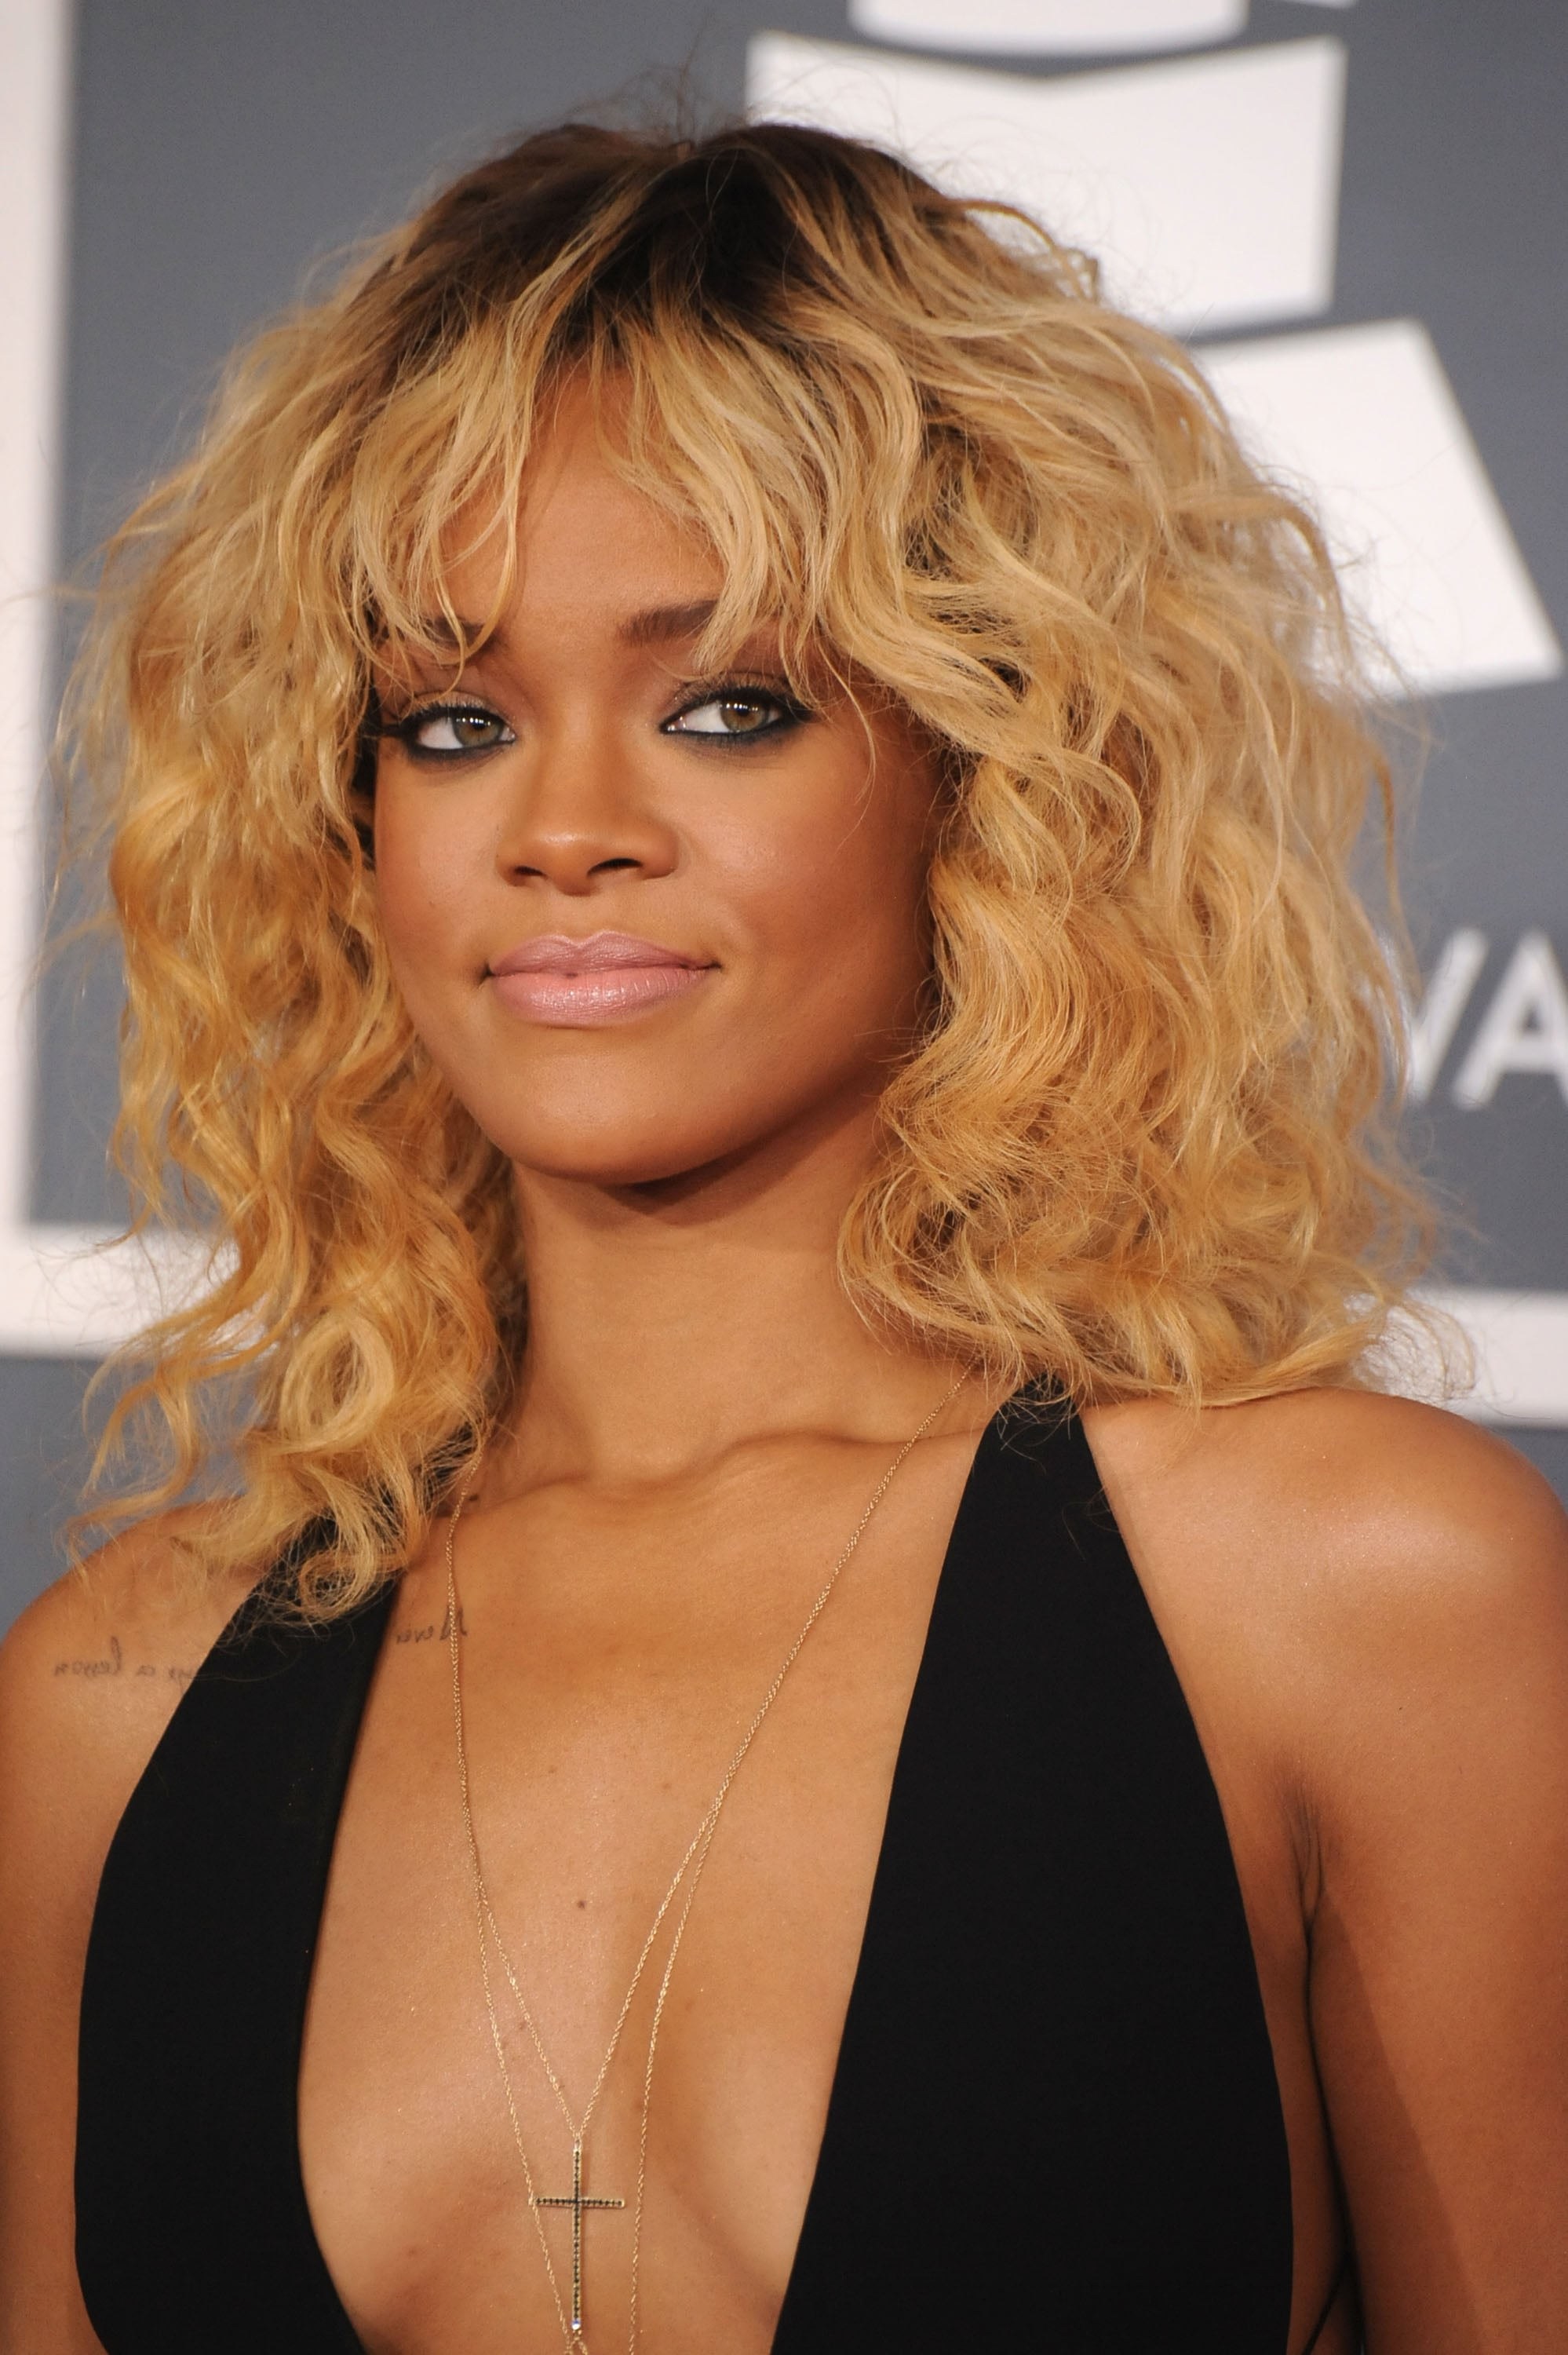 rihanna hair style rihanna with blond hair at the grammys rihanna shows 6140